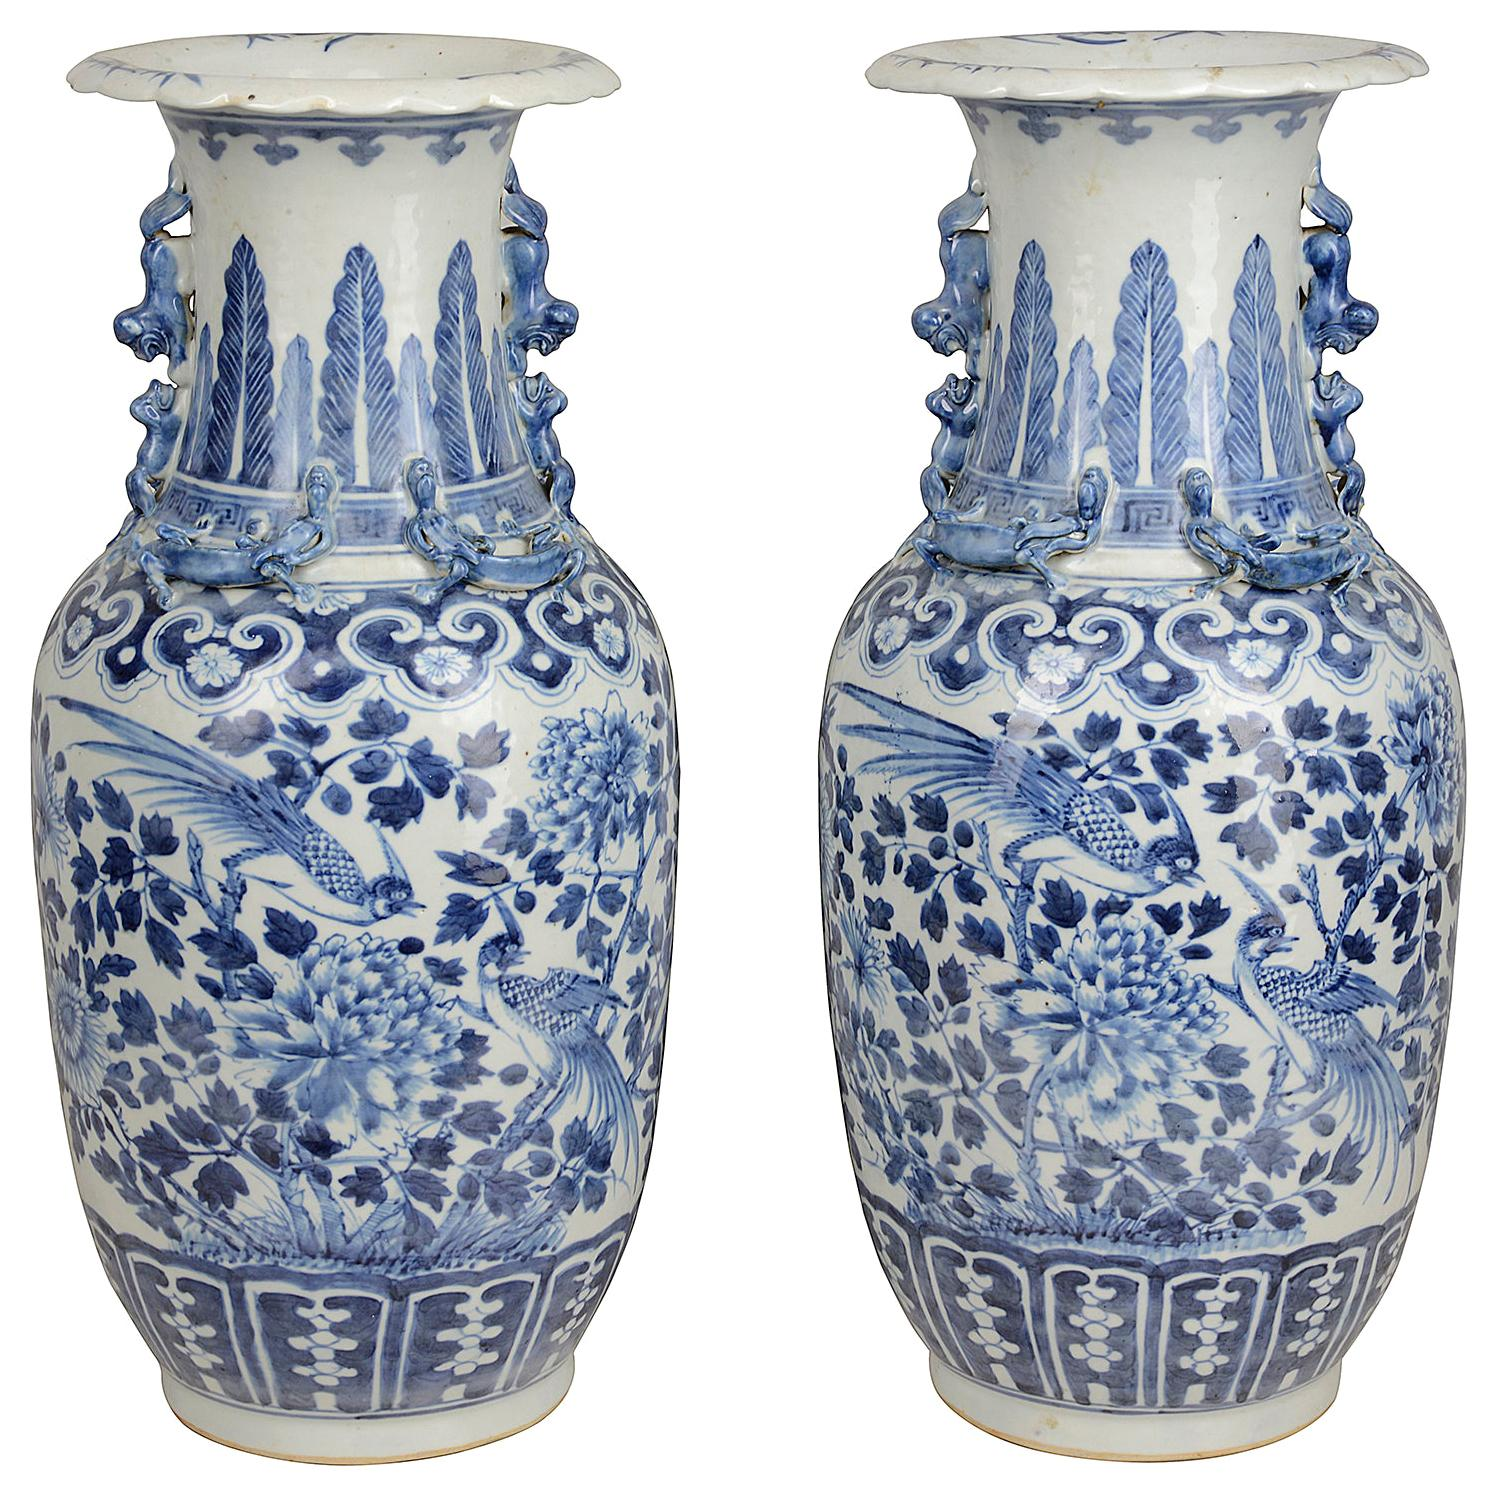 Pair of Chinese 19th Century Blue and White Vases / Lamps